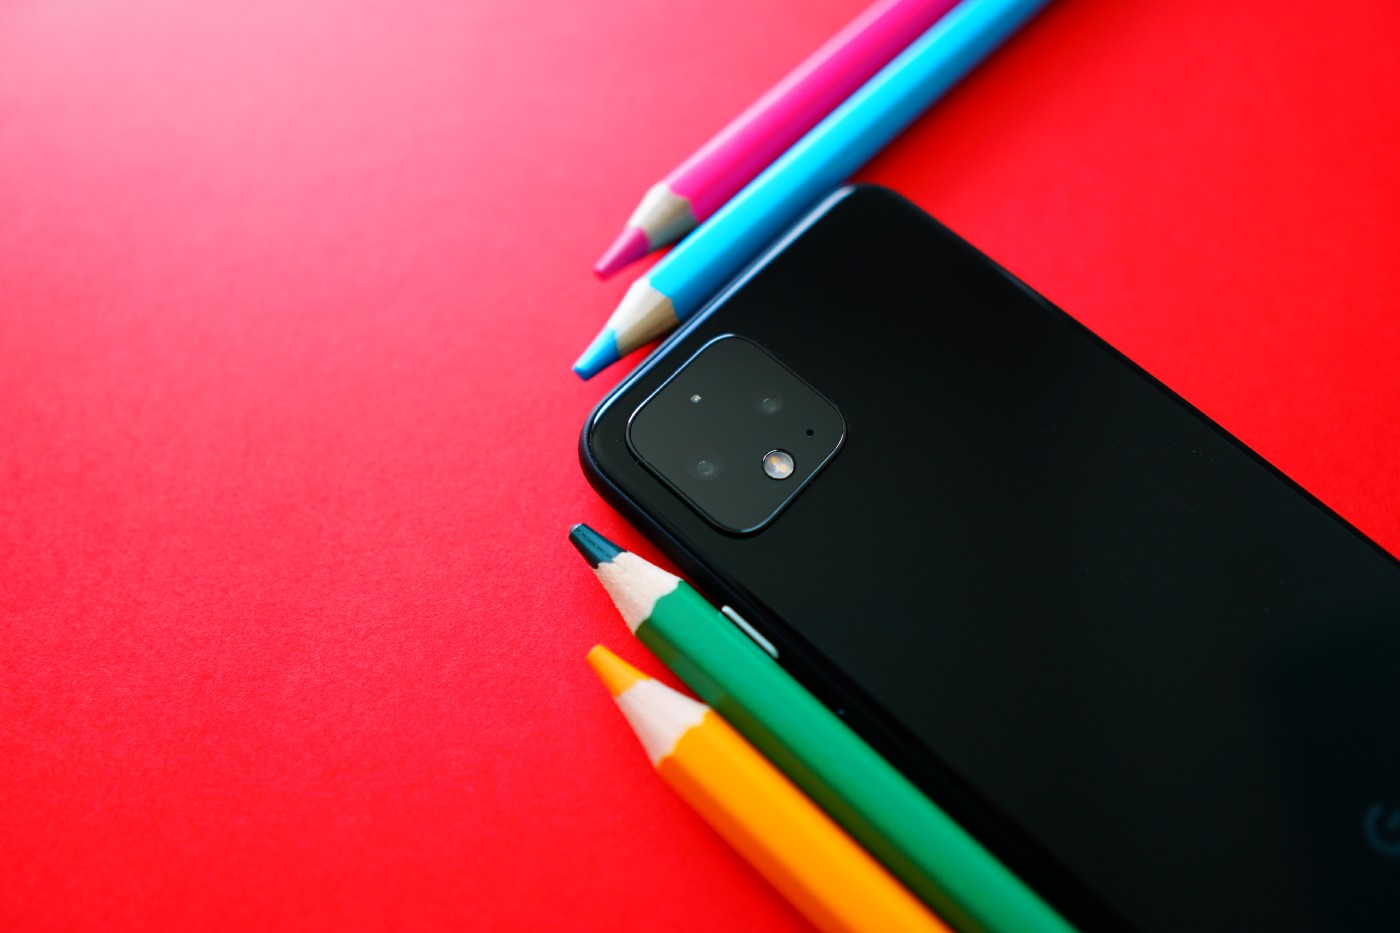 Crayons surrounding a phone